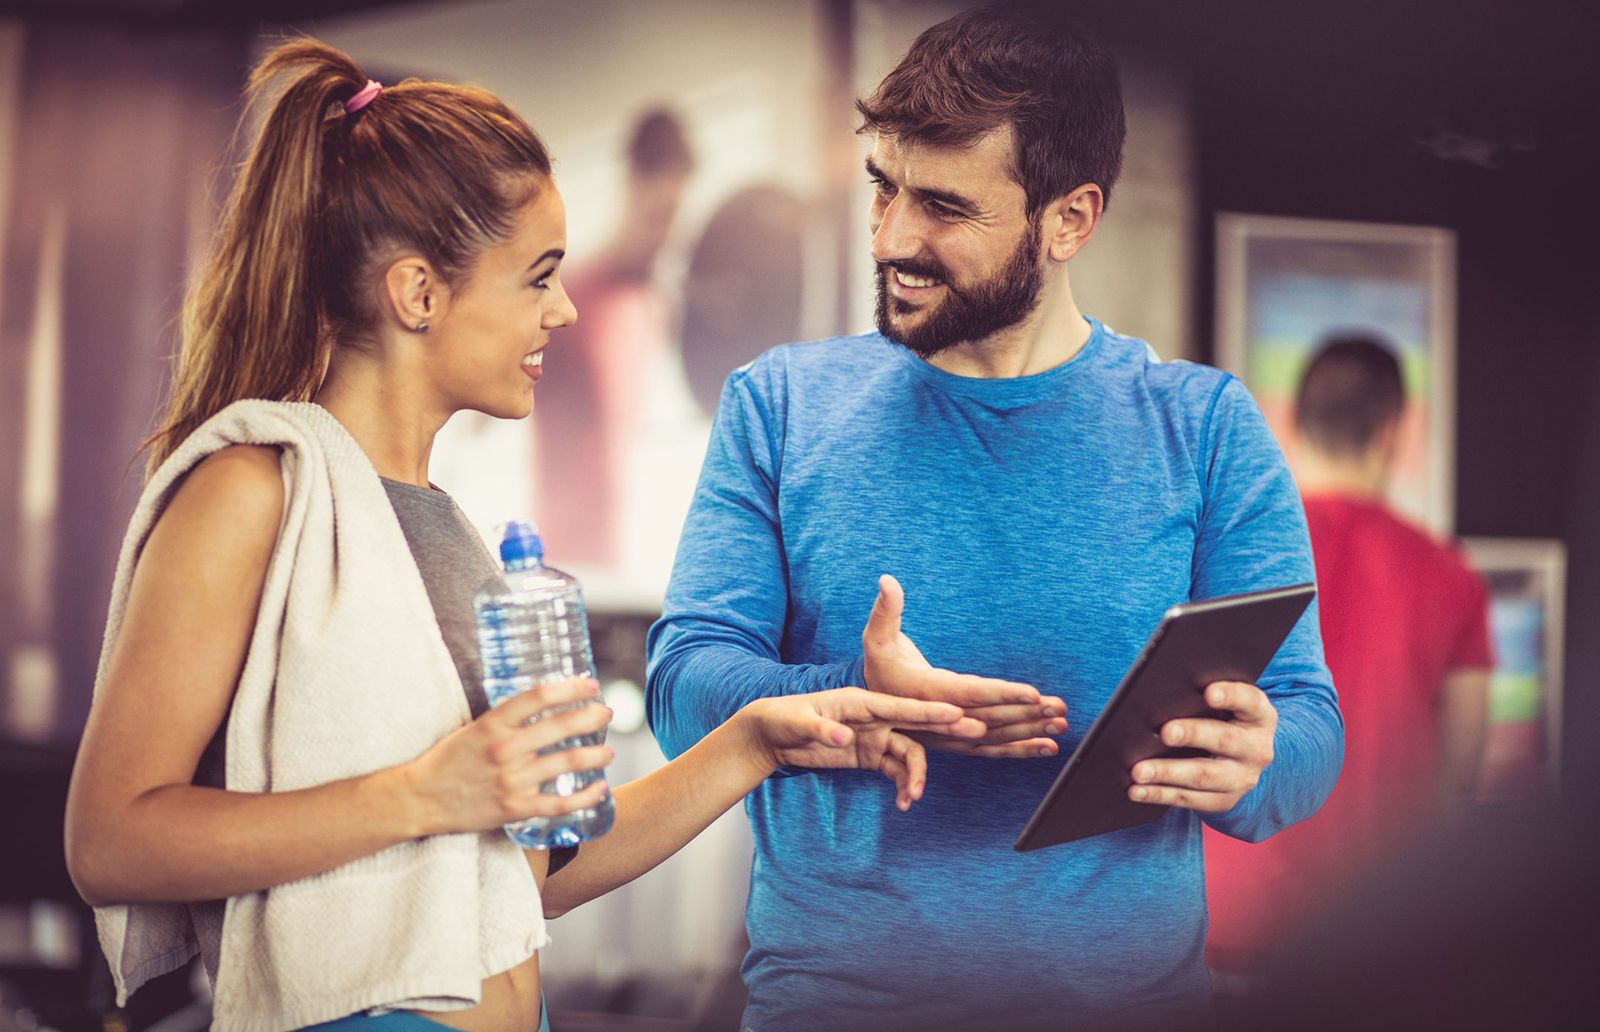 Qualified Personal Trainer Working With Client